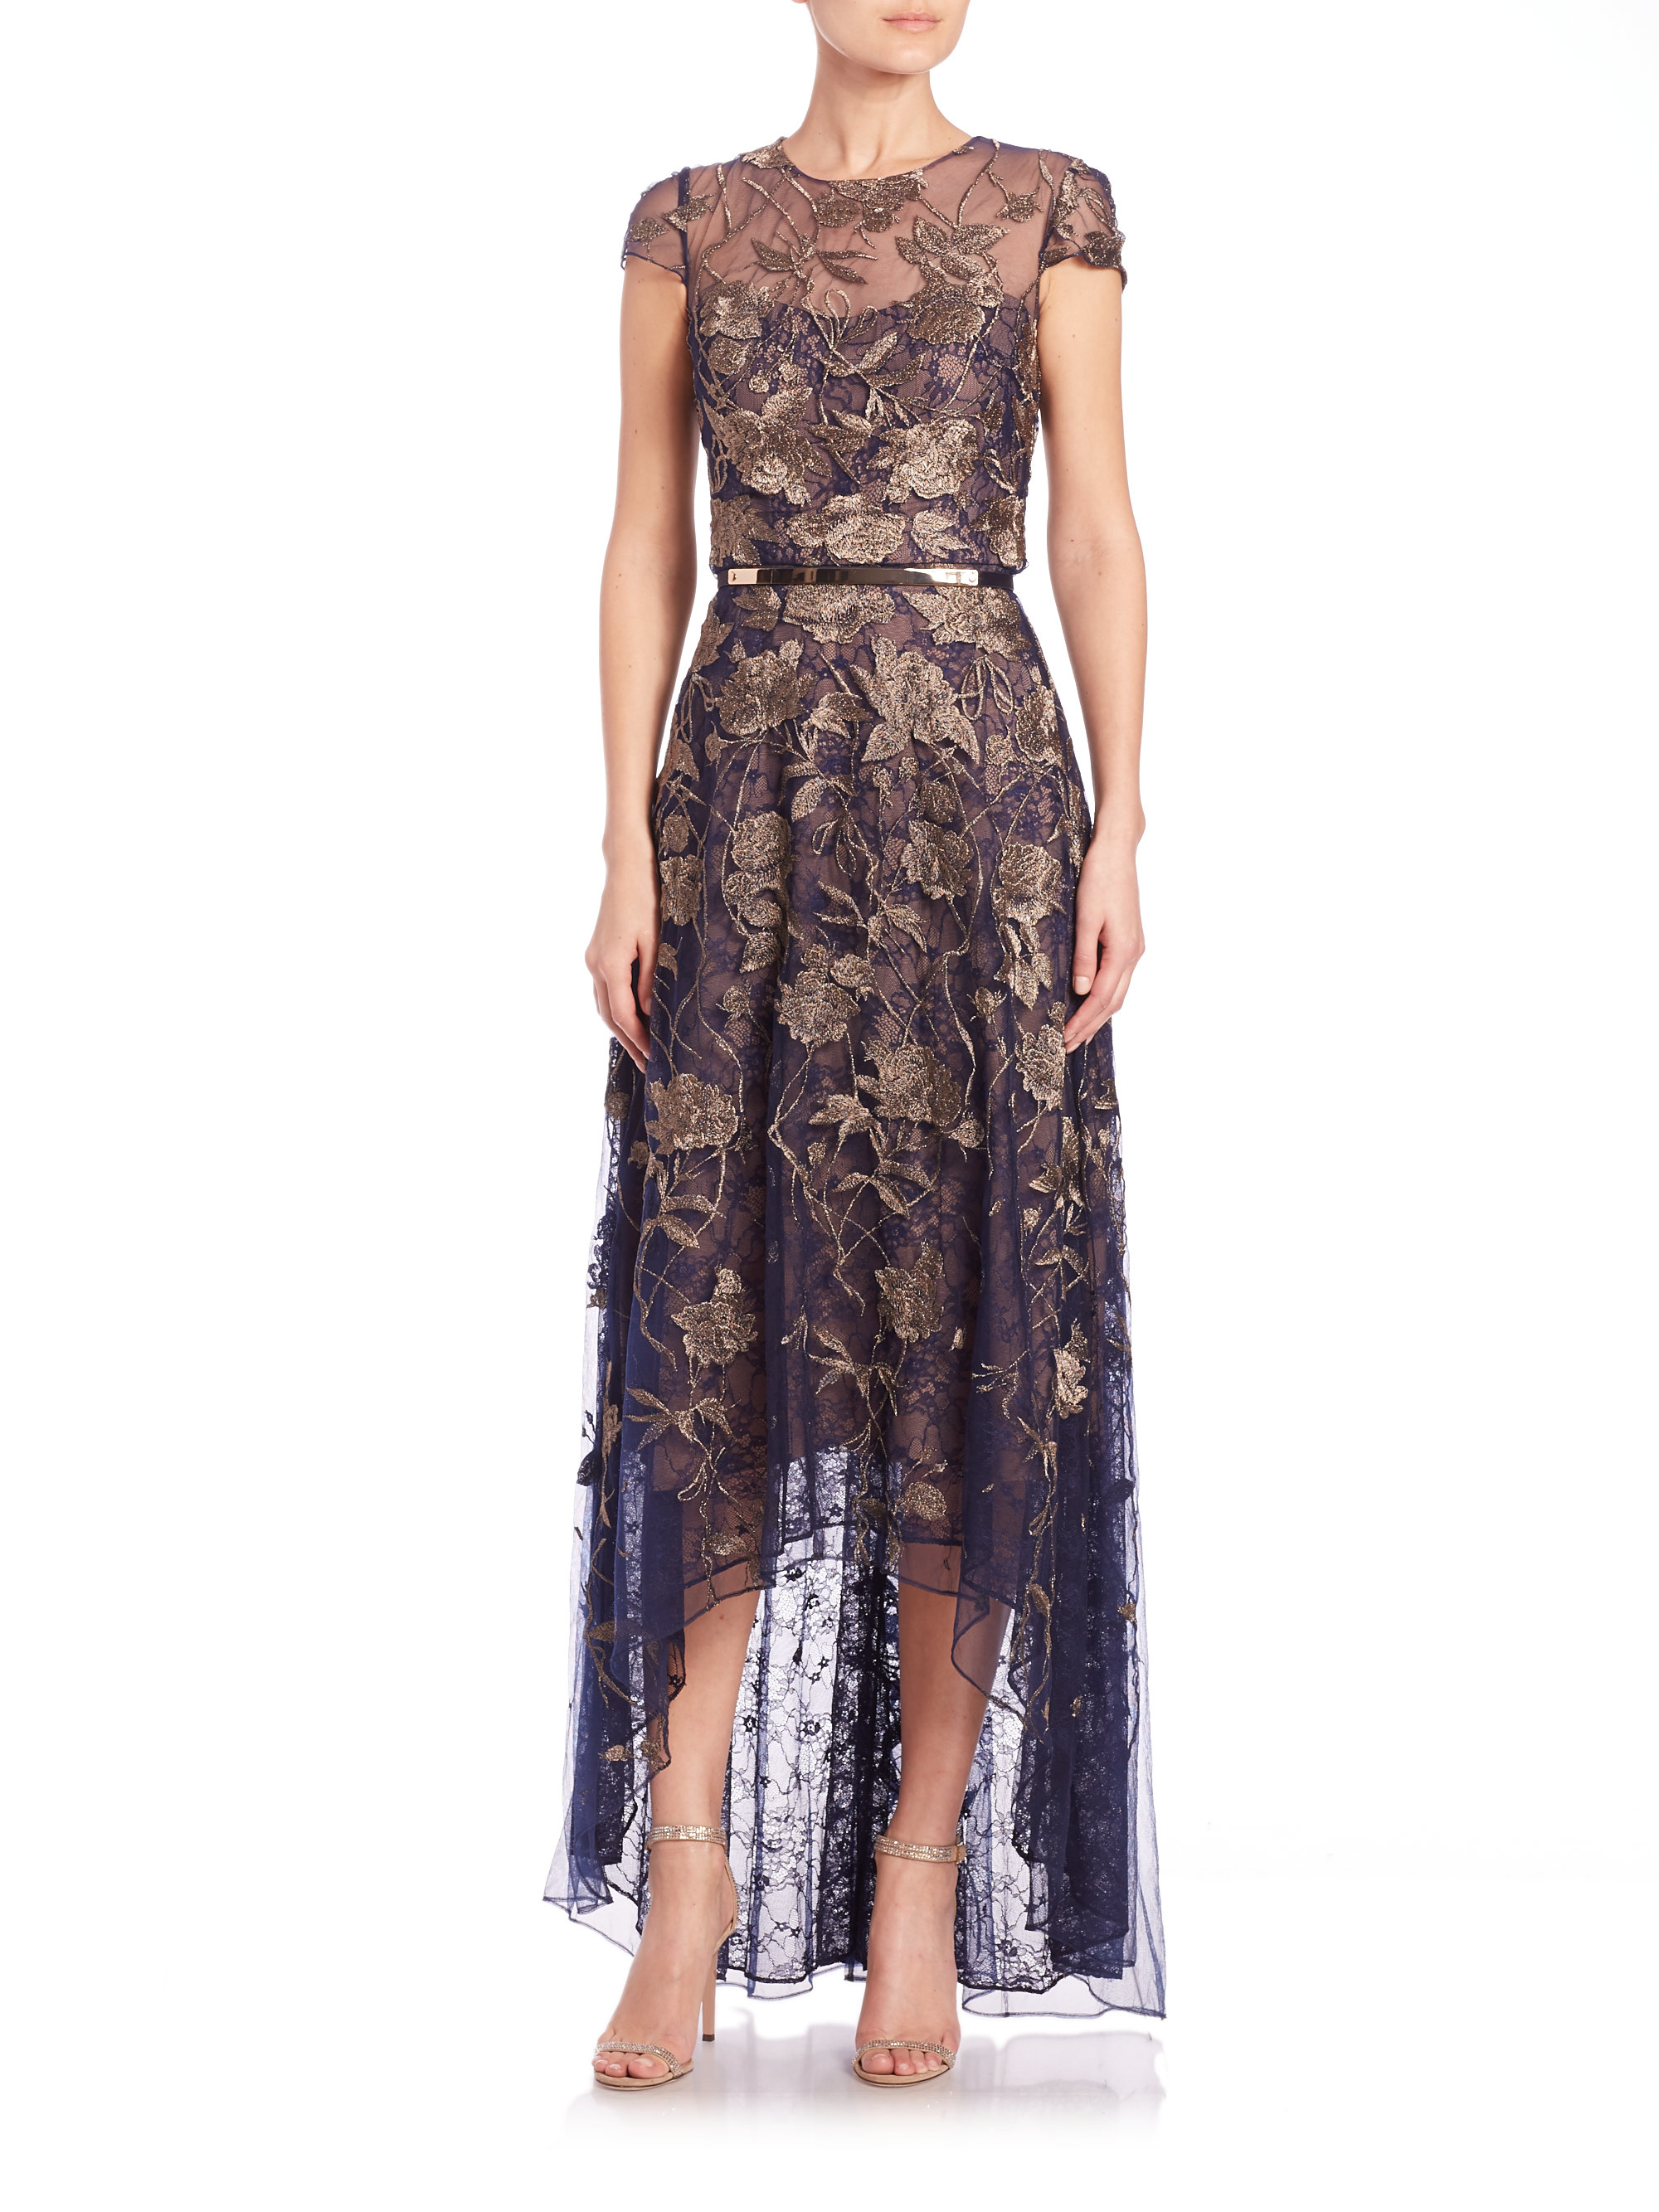 1916b644207 Marchesa notte Embroidered Tulle Gown in Metallic - Lyst